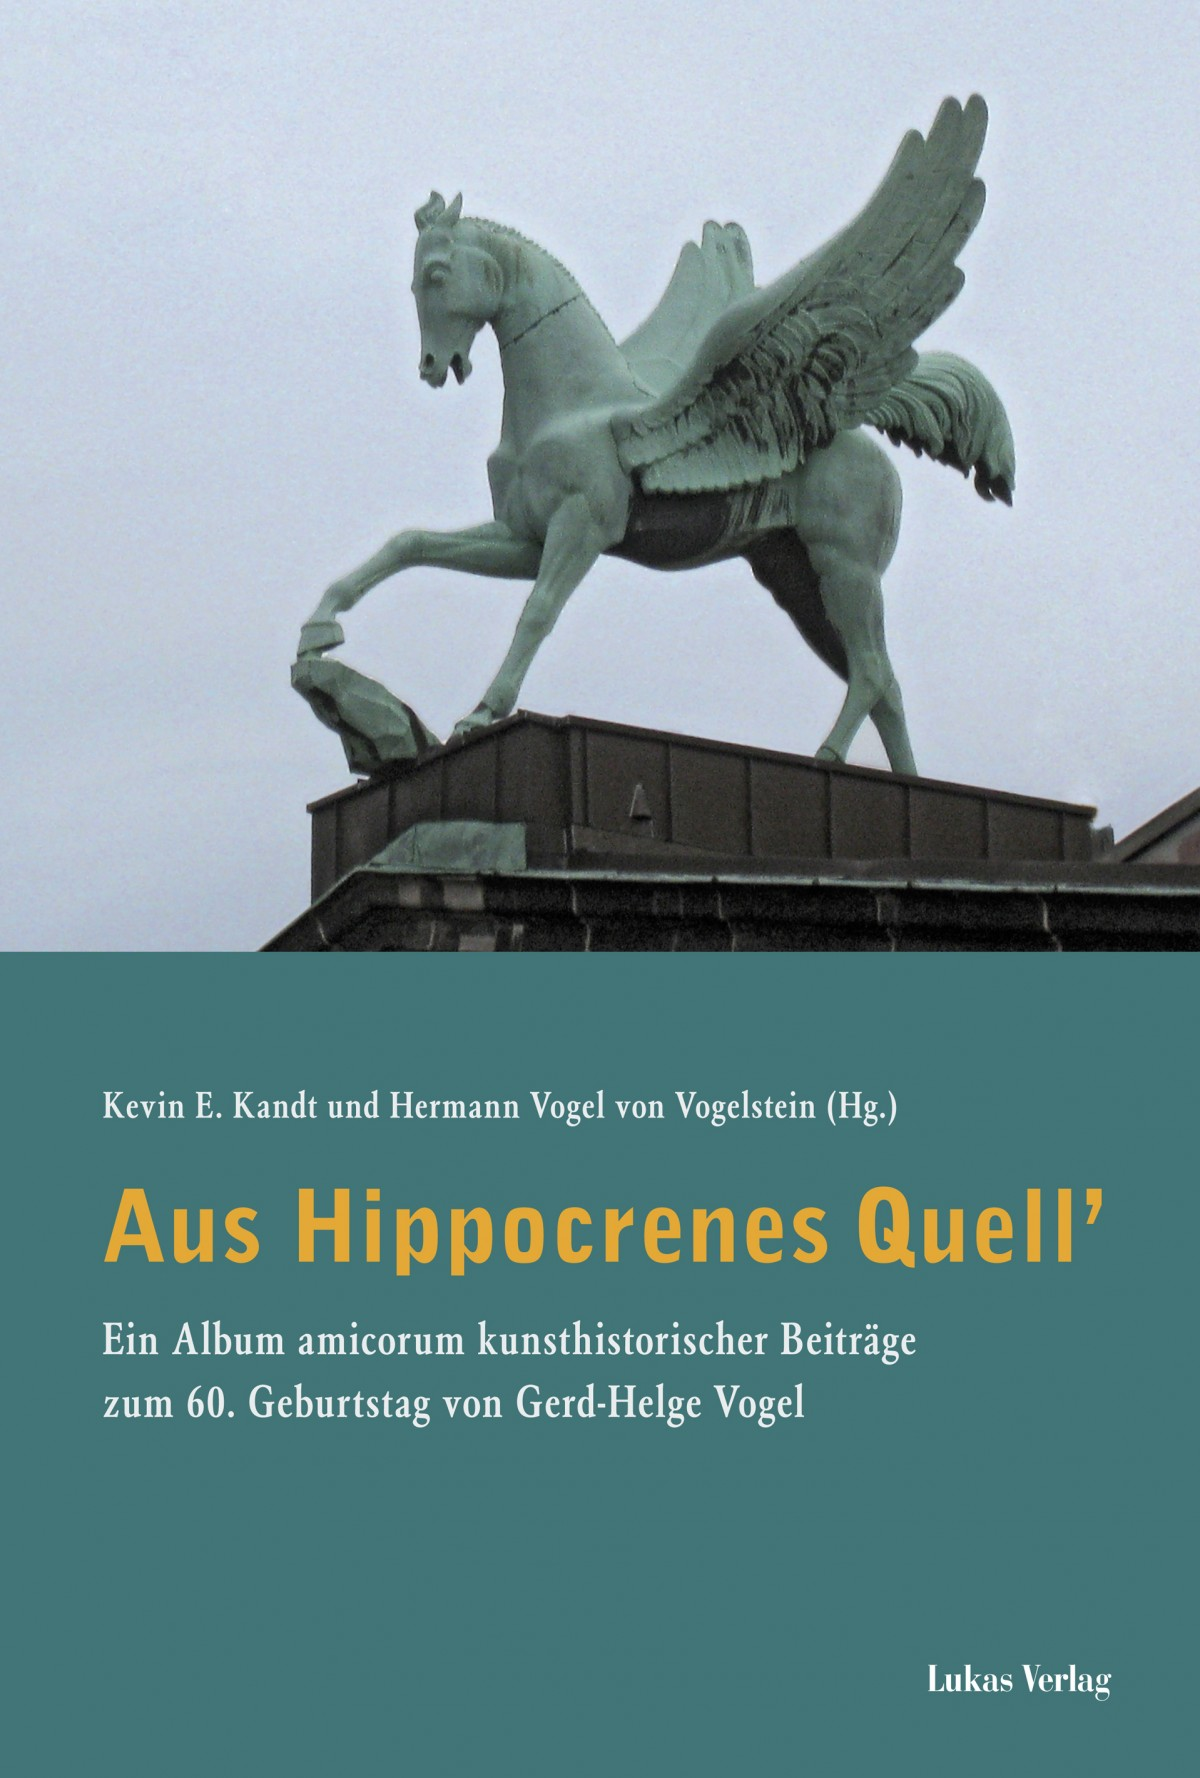 Aus Hippocrenes Quell